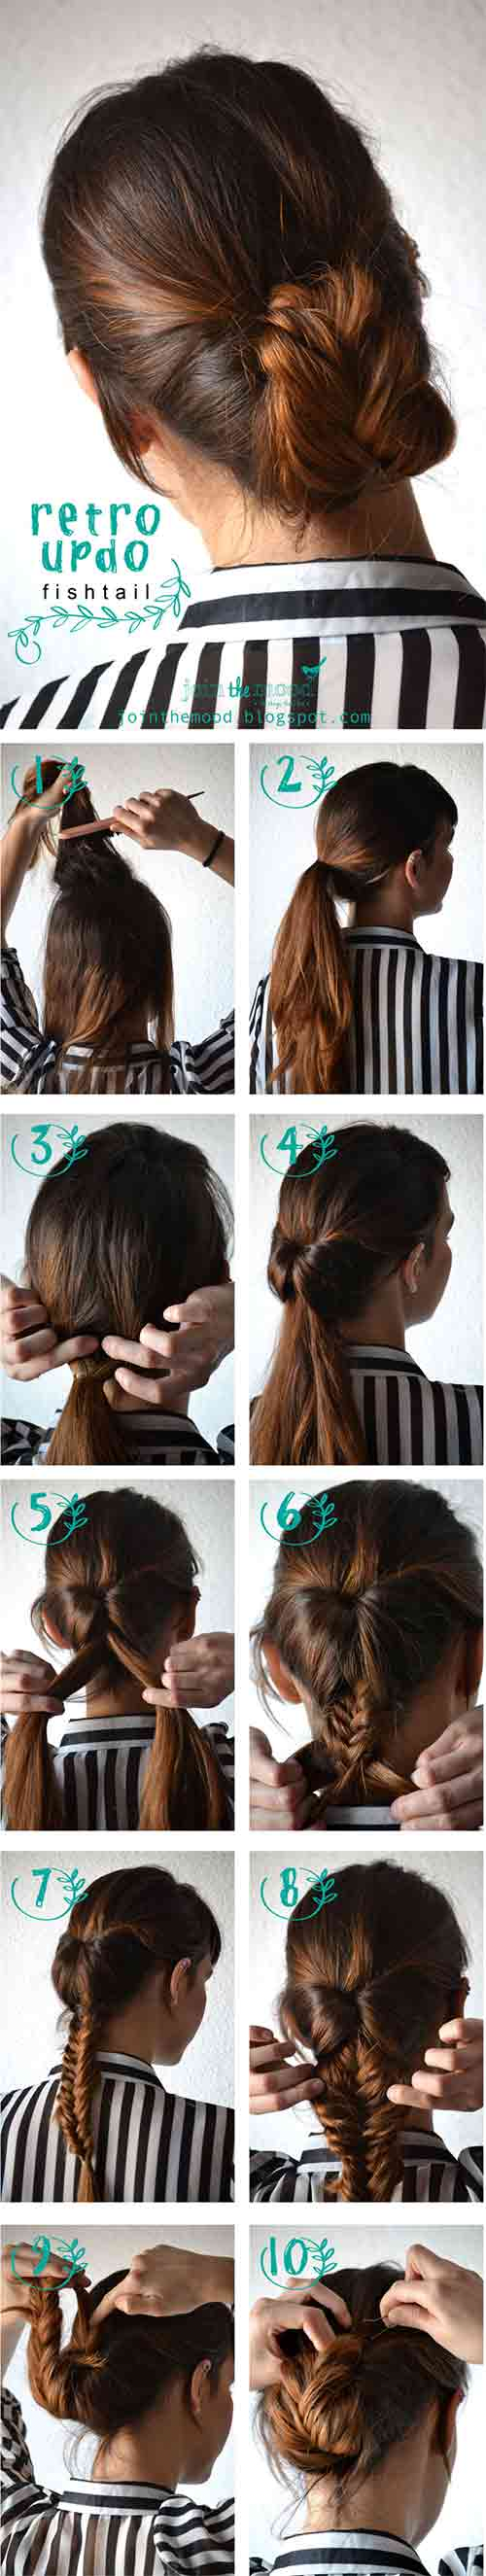 6. Retro Fishtail Updo